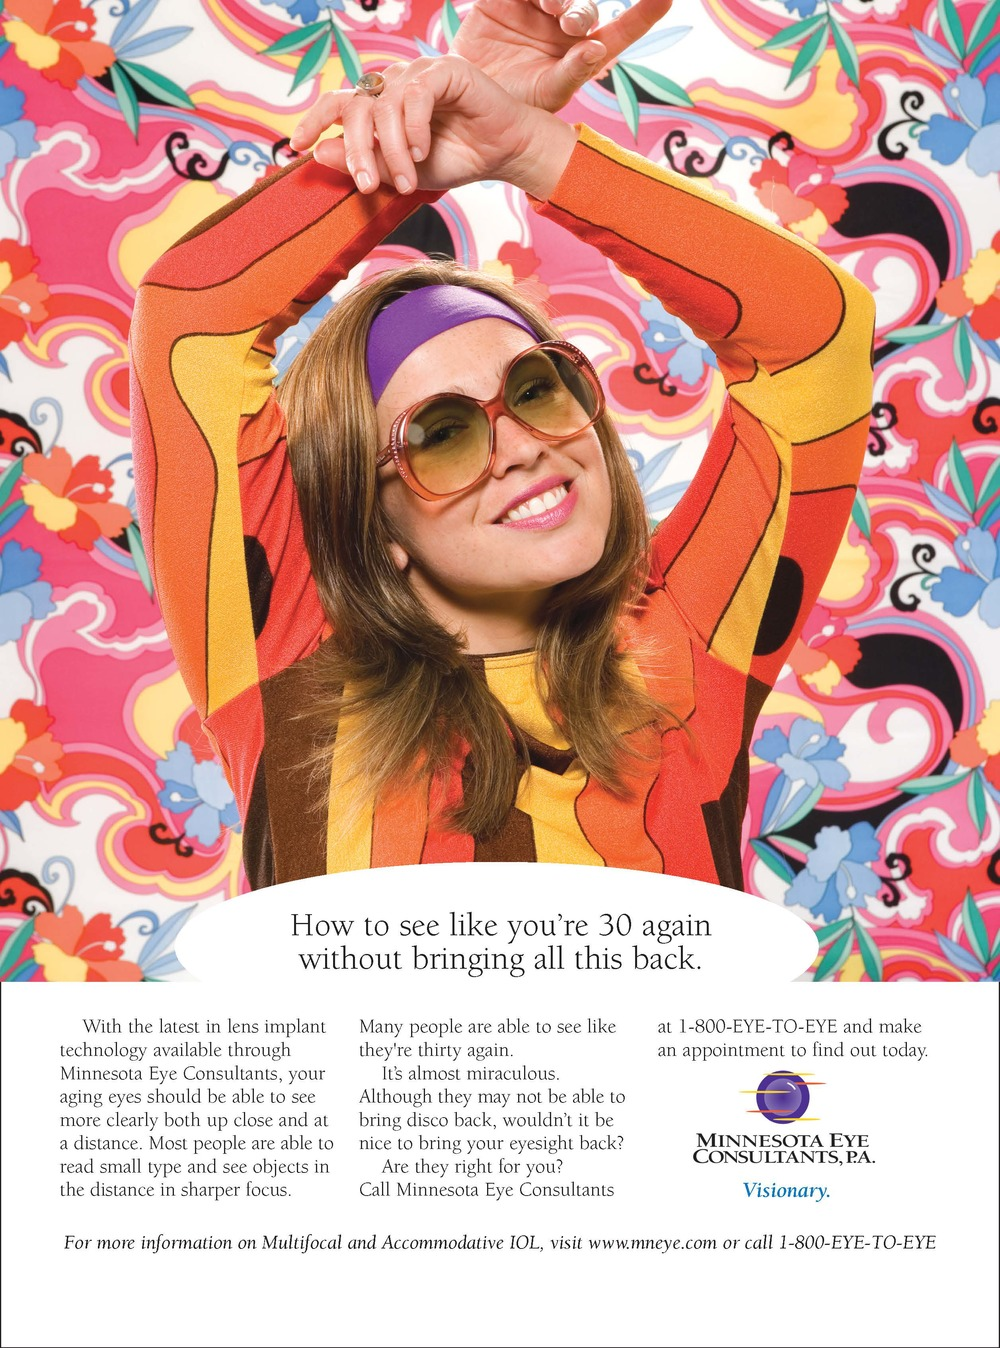 Magazine advertisement featuring a smiling woman dressed in 70's apparel.